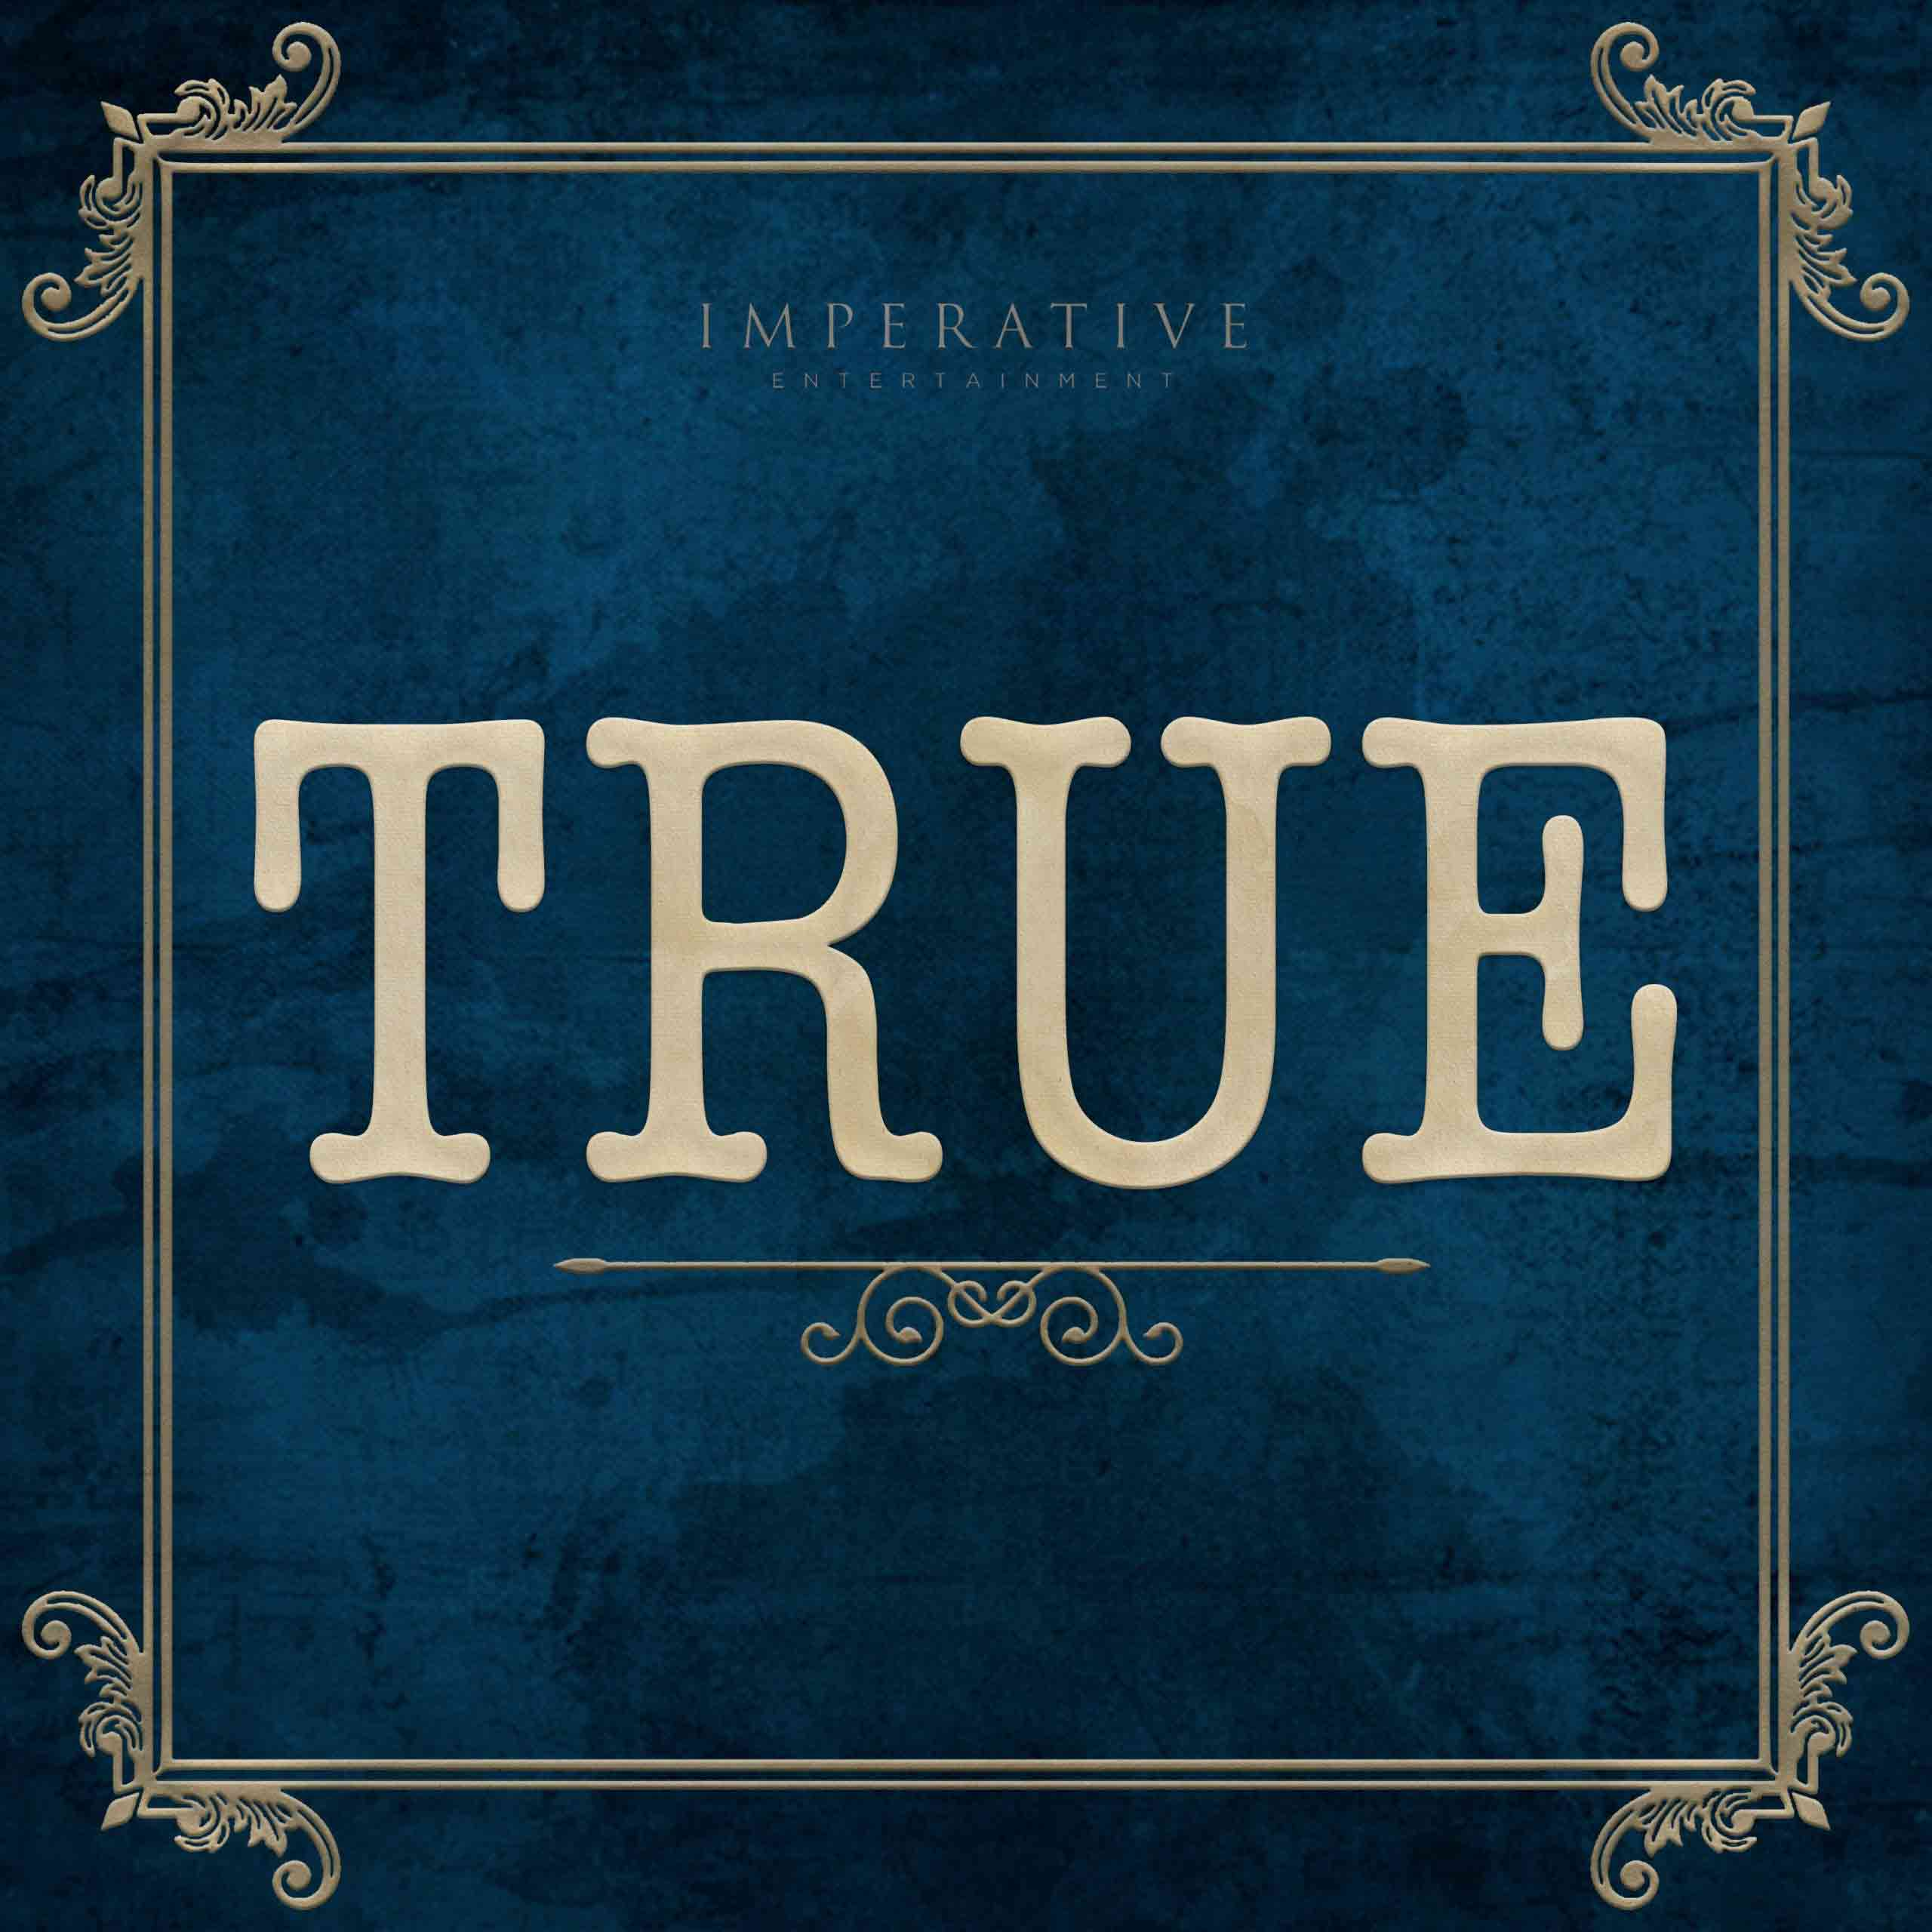 WESTWOOD ONE AND IMPERATIVE ENTERTAINMENT'S PODCAST DIVISION LAUNCH TRUE